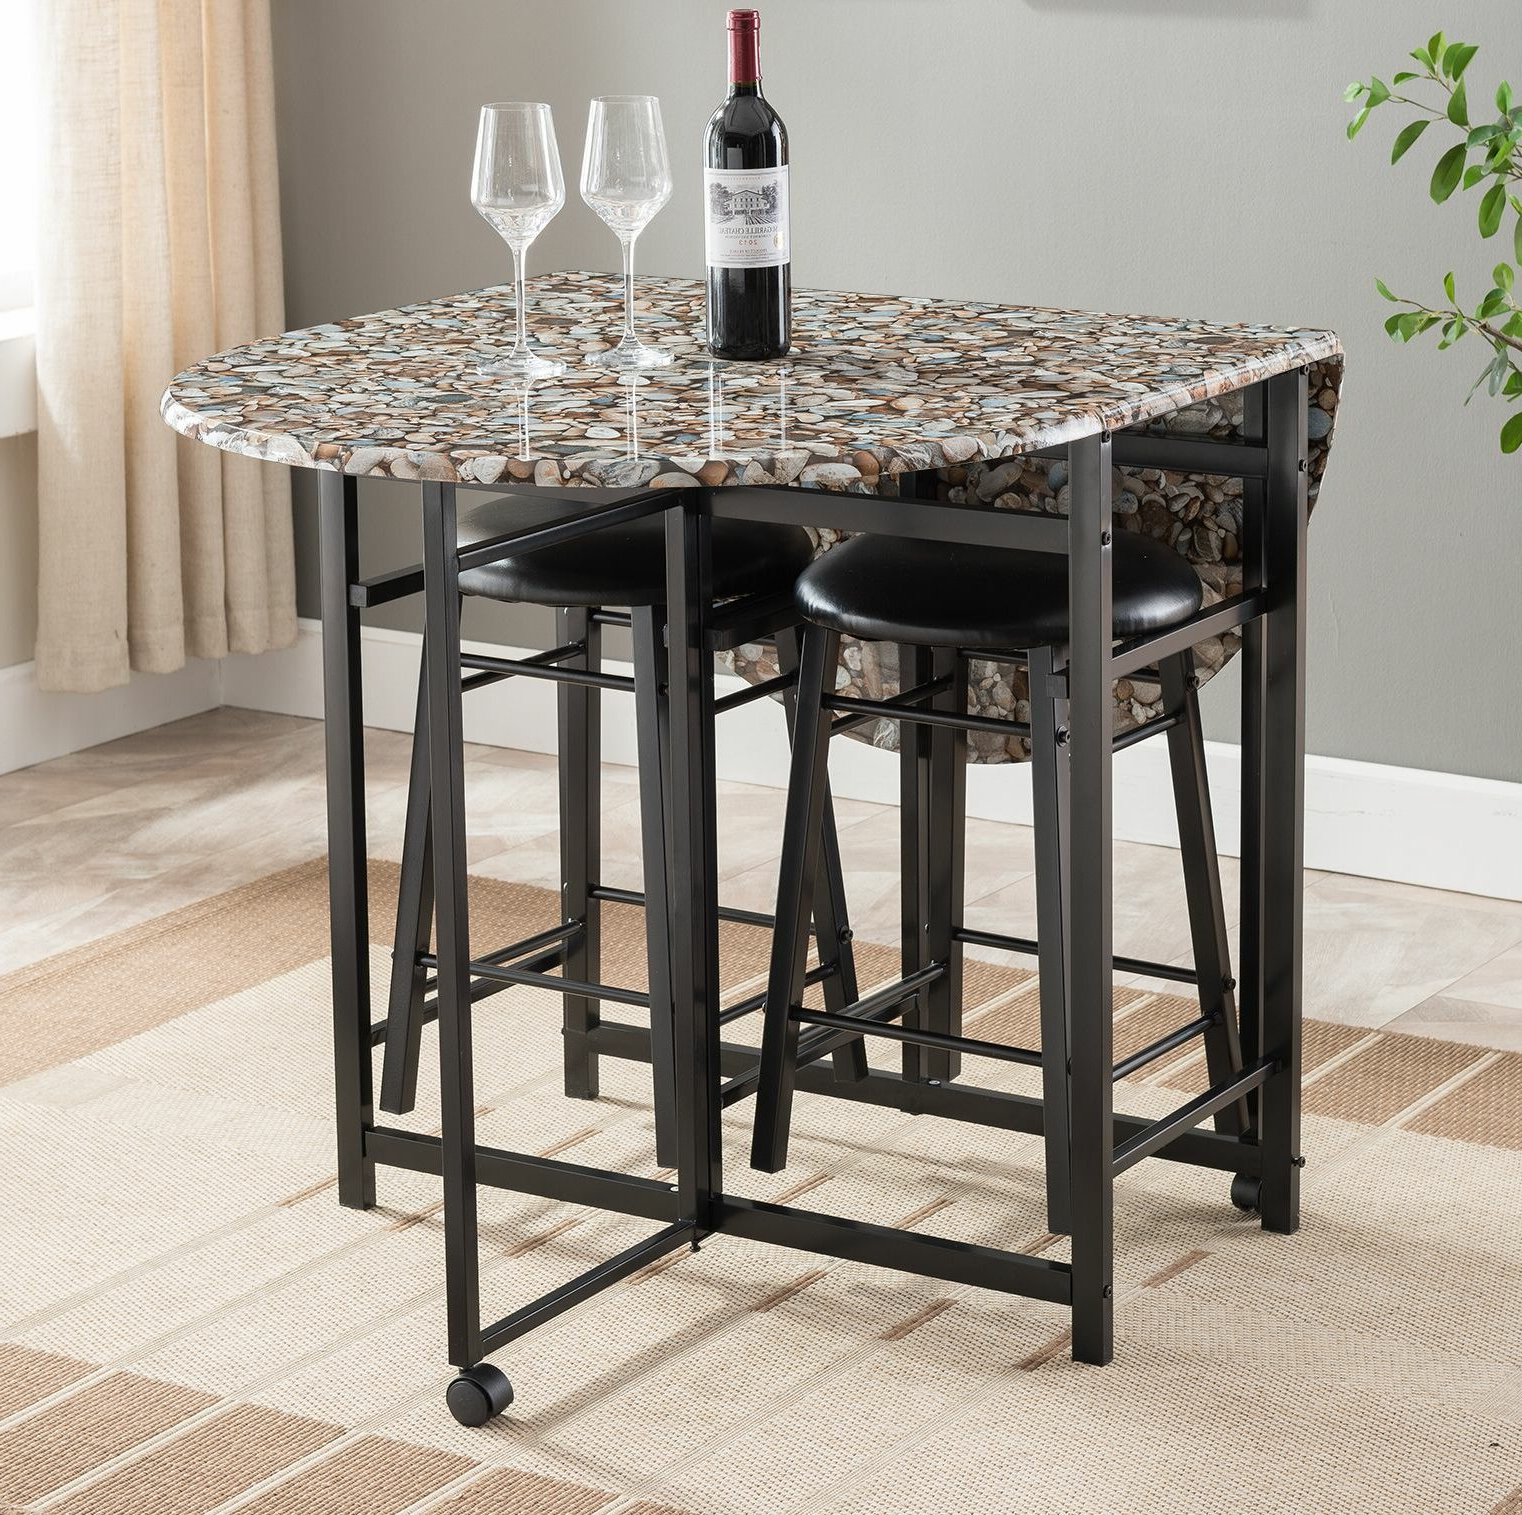 Widely Used Mizpah 3 Piece Counter Height Dining Sets Within Cuyahoga 3 Piece Pub Table Set (View 20 of 20)